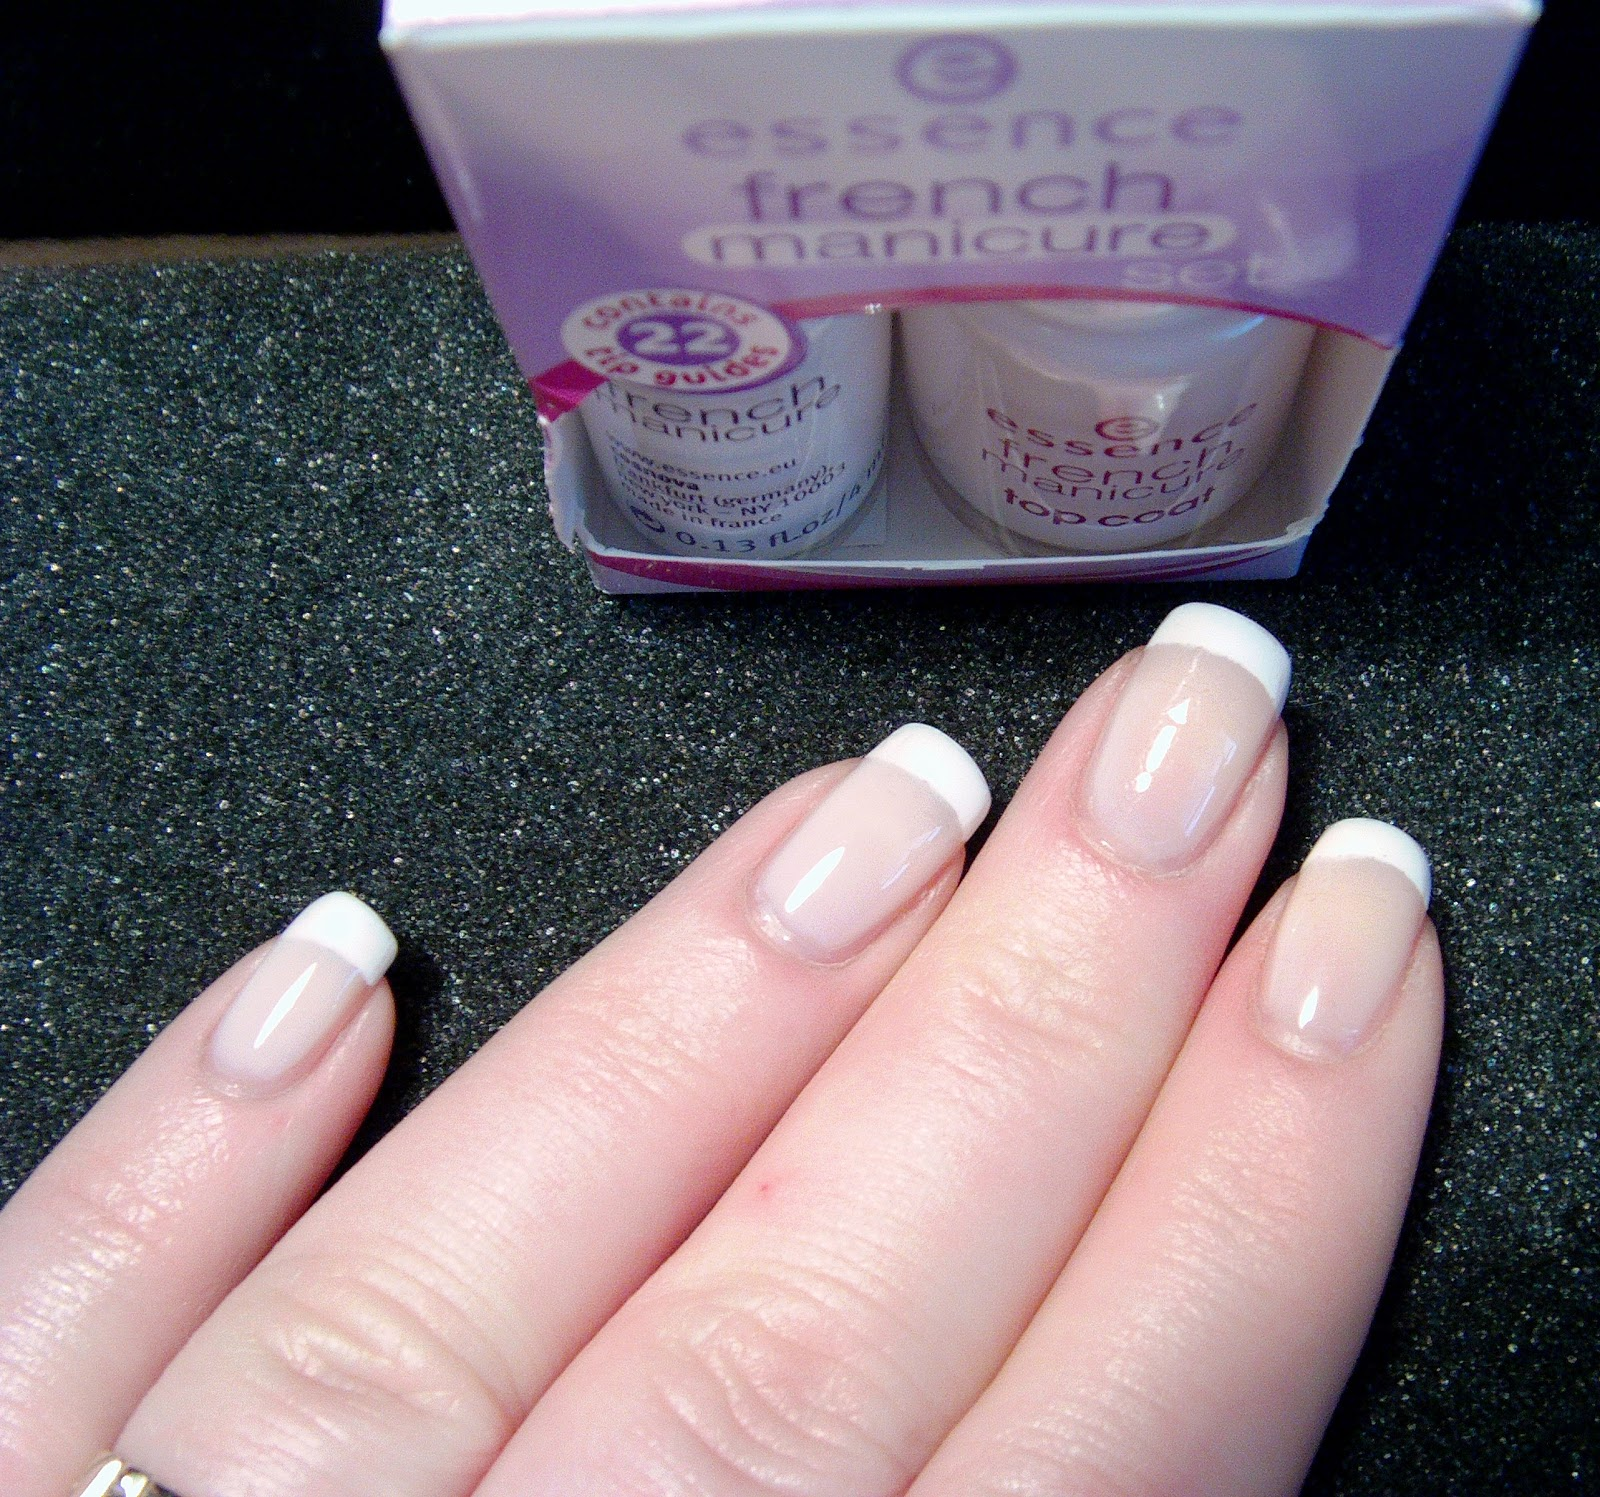 All about nails: French manicure with new Essence french manicure ...